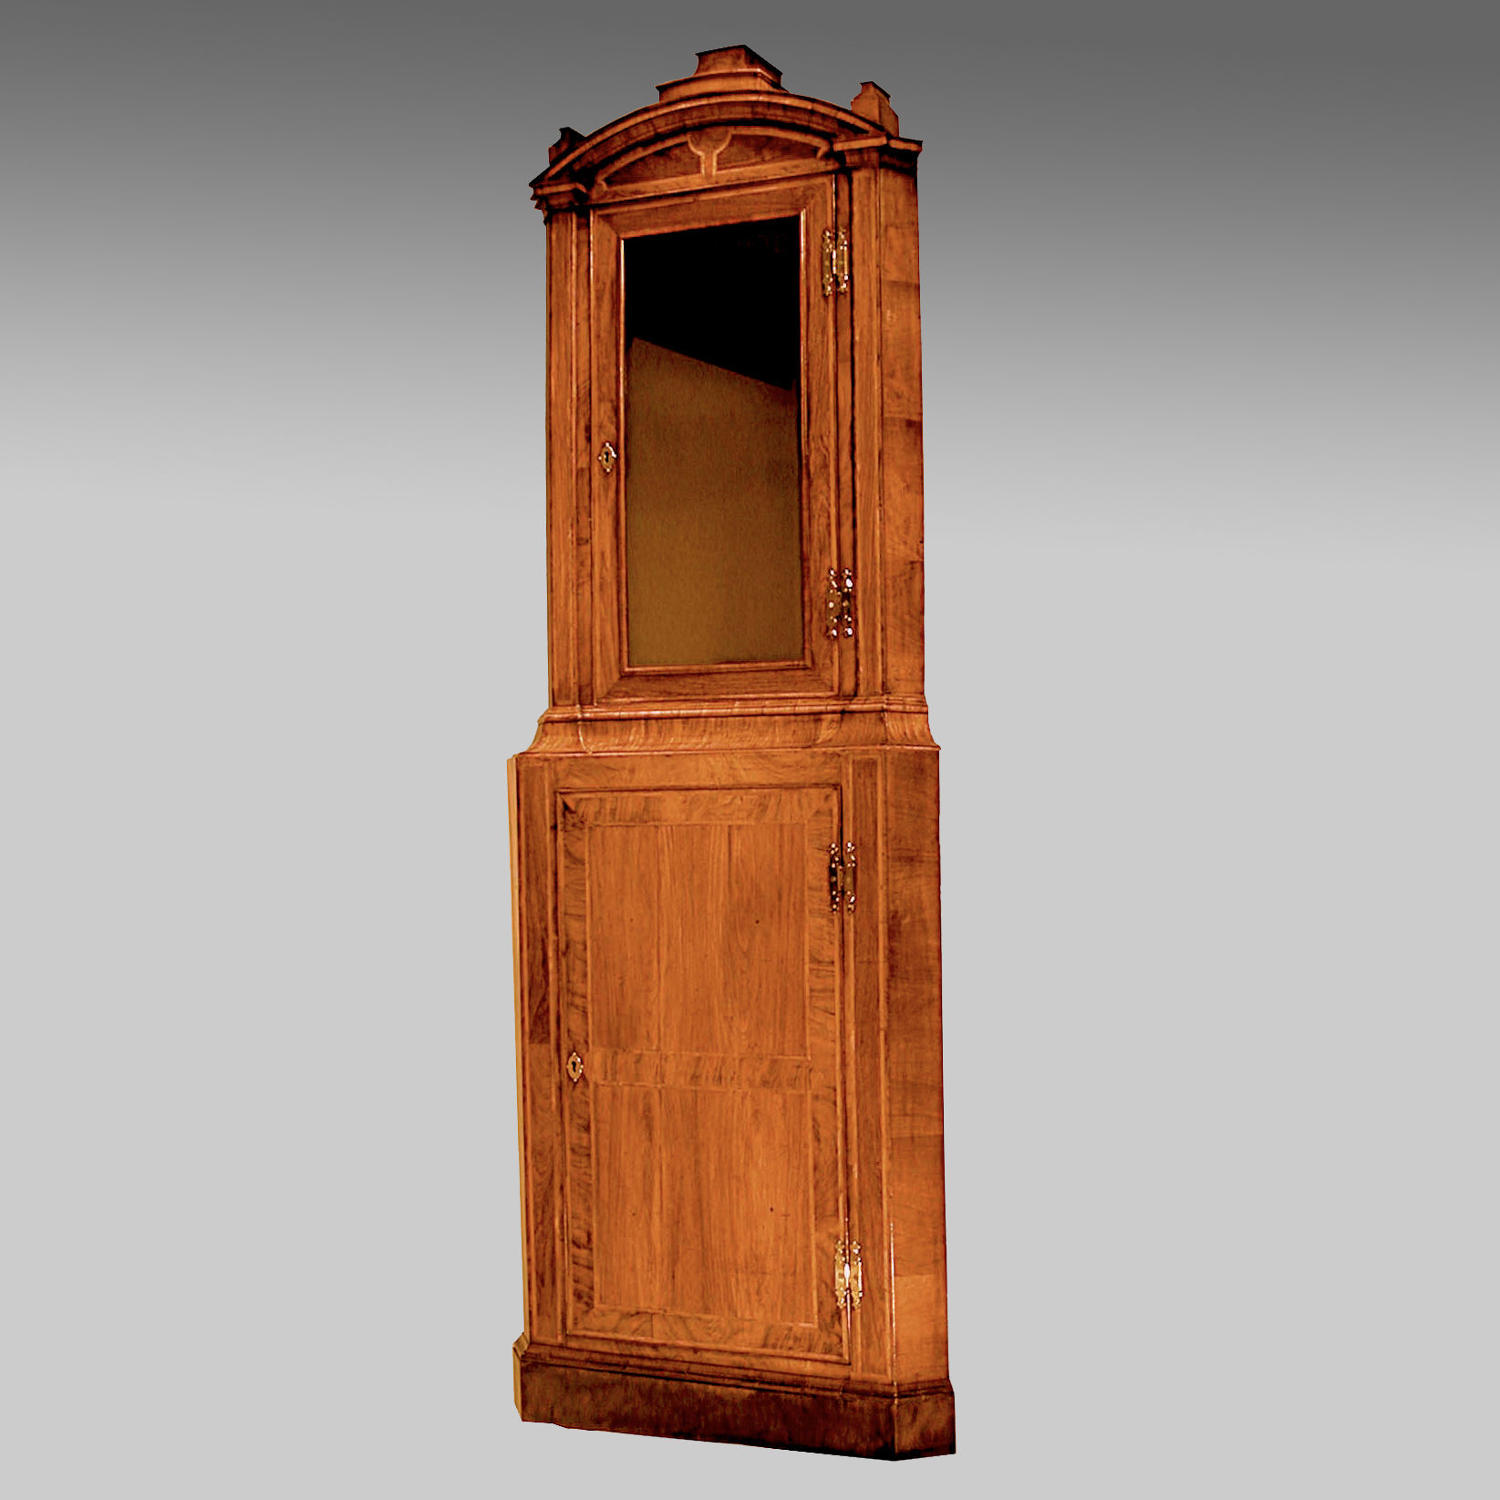 Early 18th century walnut standing corner cupboard